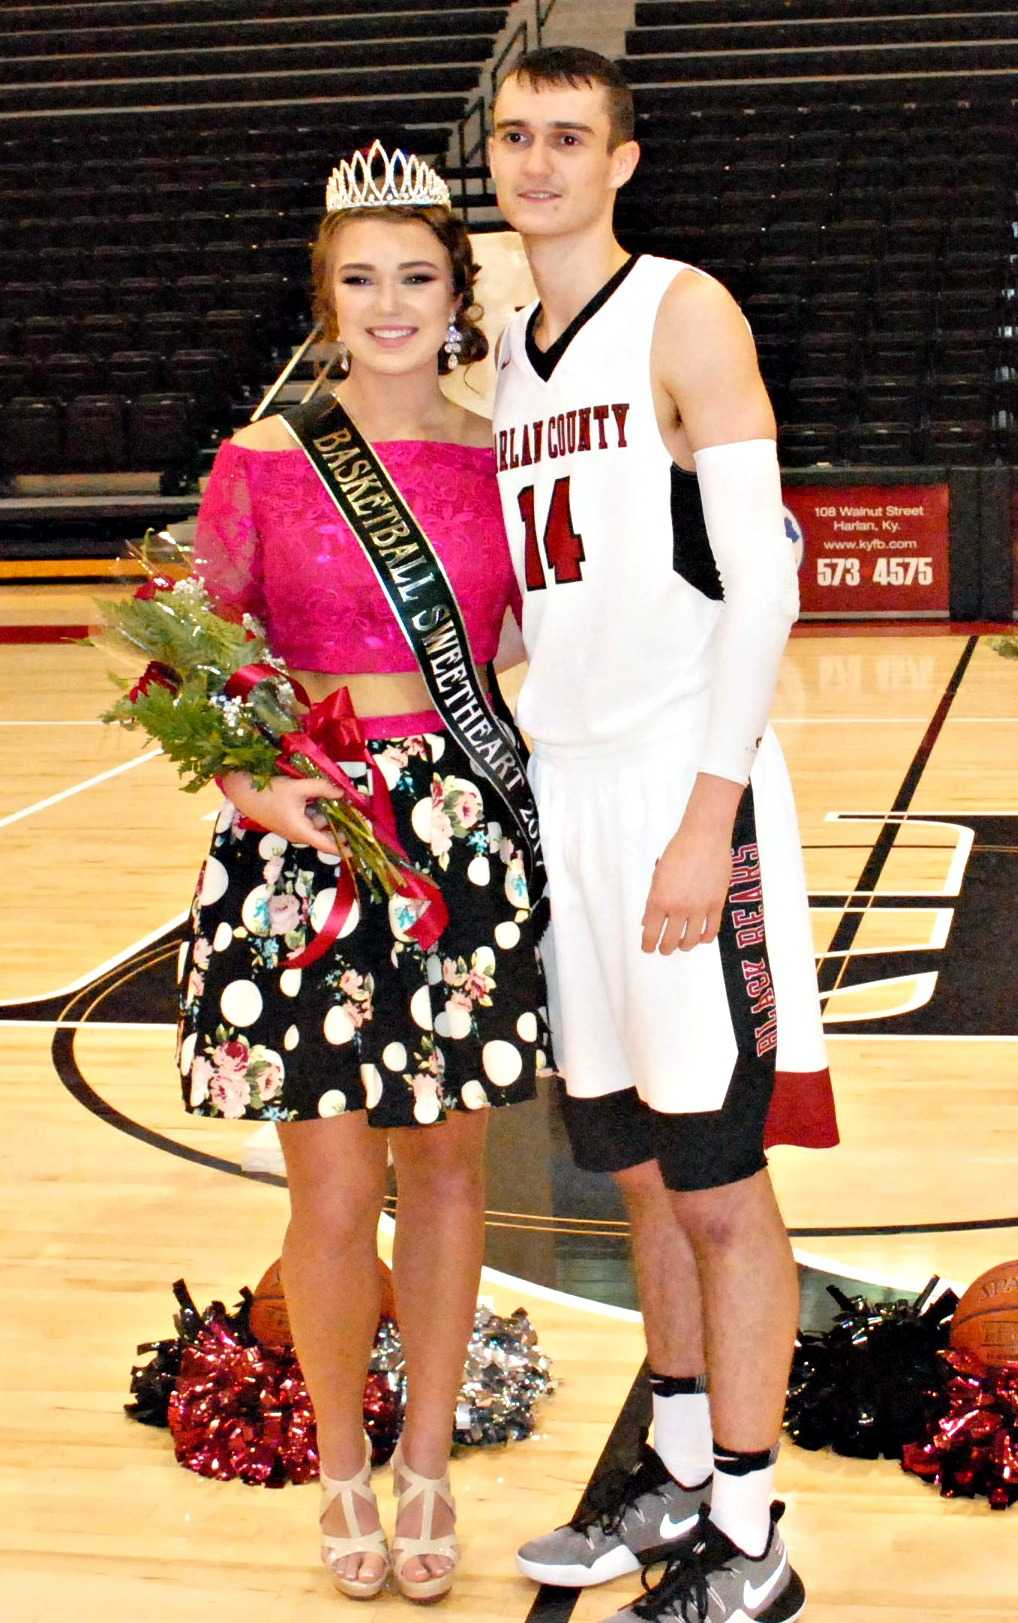 Harlan County High School senior Haley Blakley was crowned the HCHS Basketball Sweetheart in ceremonies before Monday's game against Barbourville. Blakley was escorted by senior guard Treyce Spurlock.